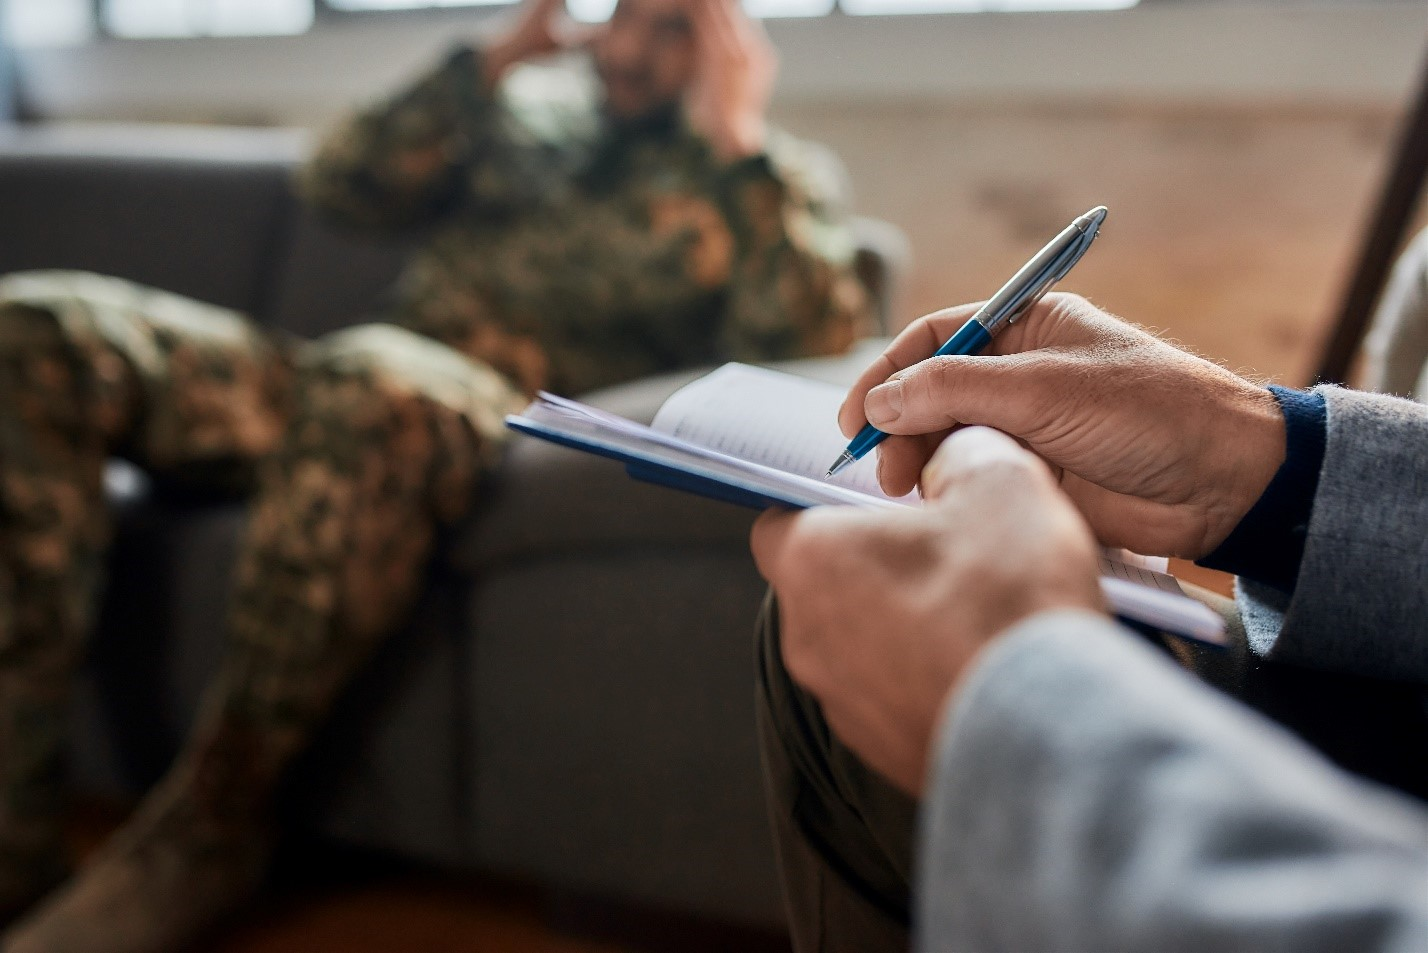 Addiction Treatment Center for Veterans & Military in Orange County